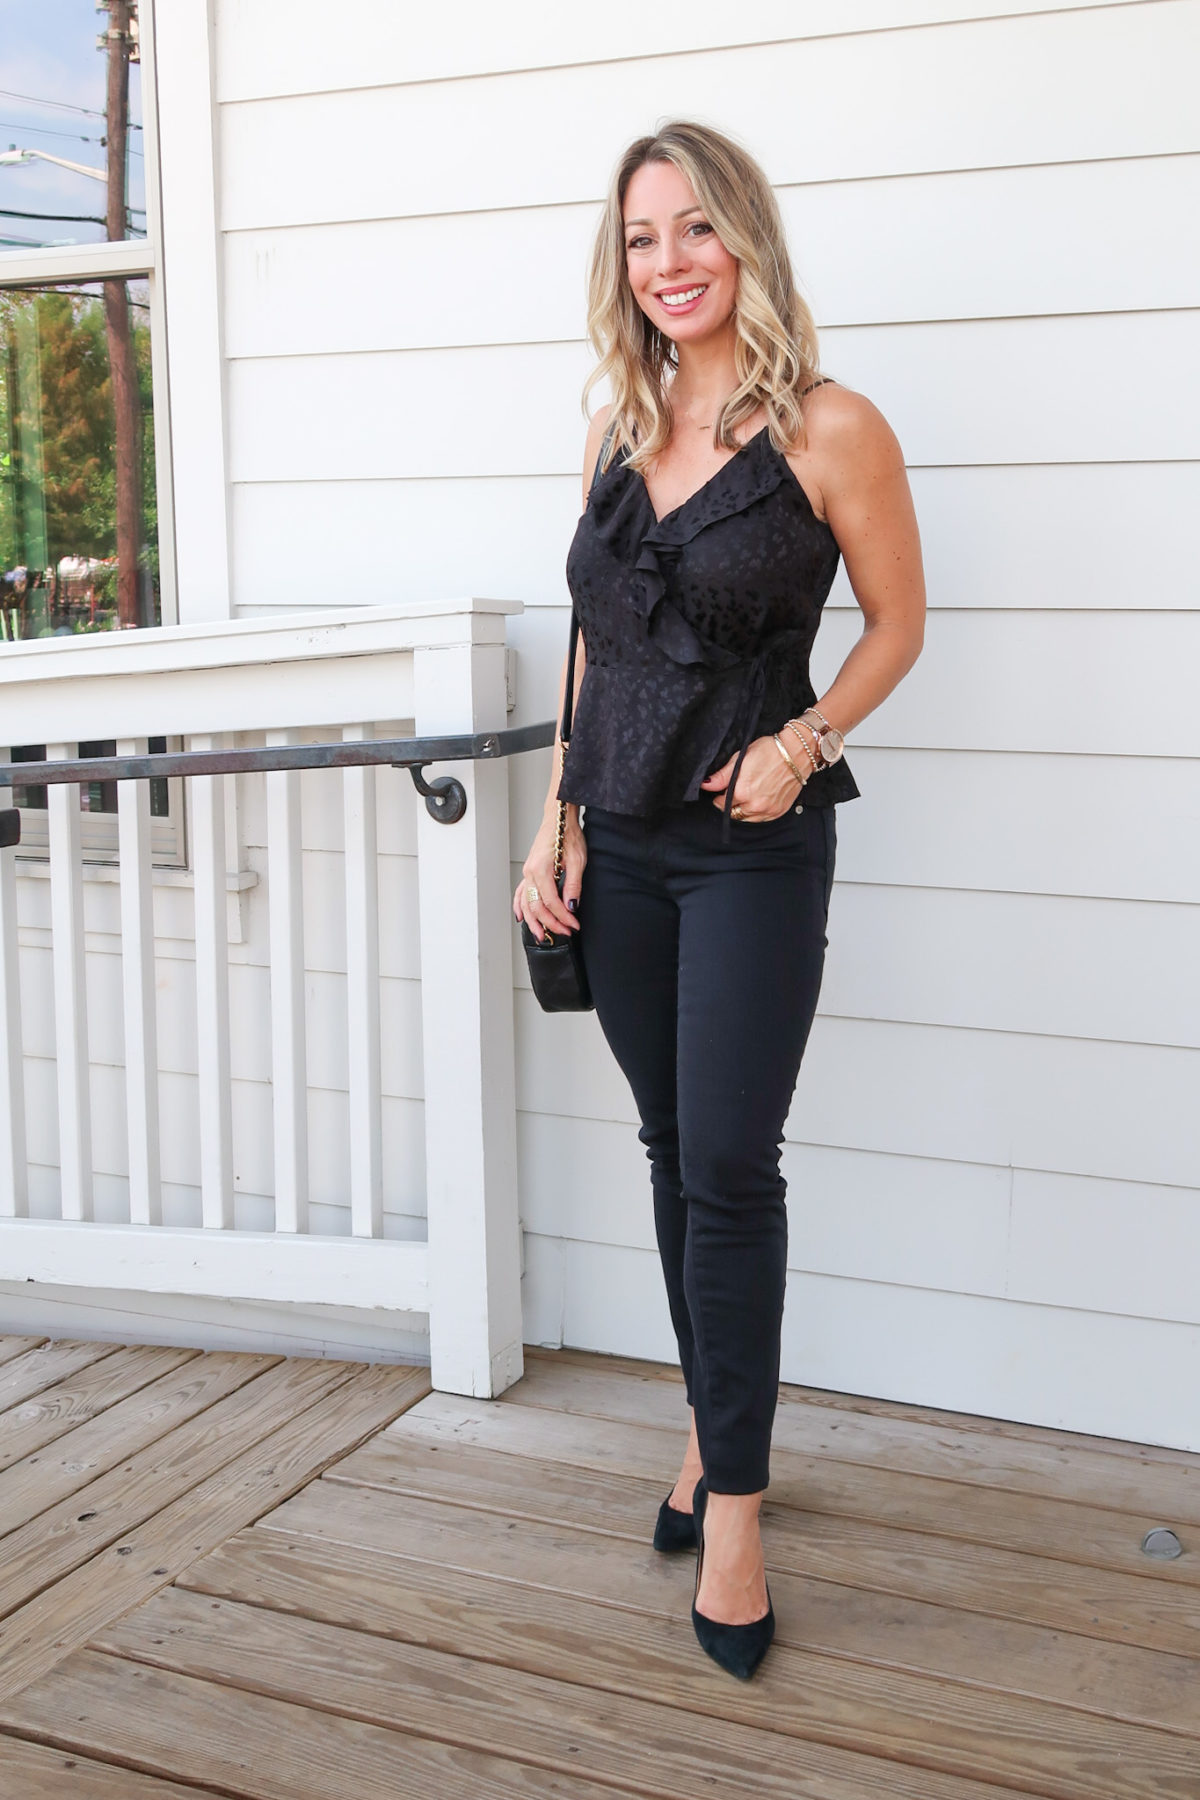 Outfits Lately, Express Wrap Top, Black Denim Jeans, Heels, Crossbody Bag